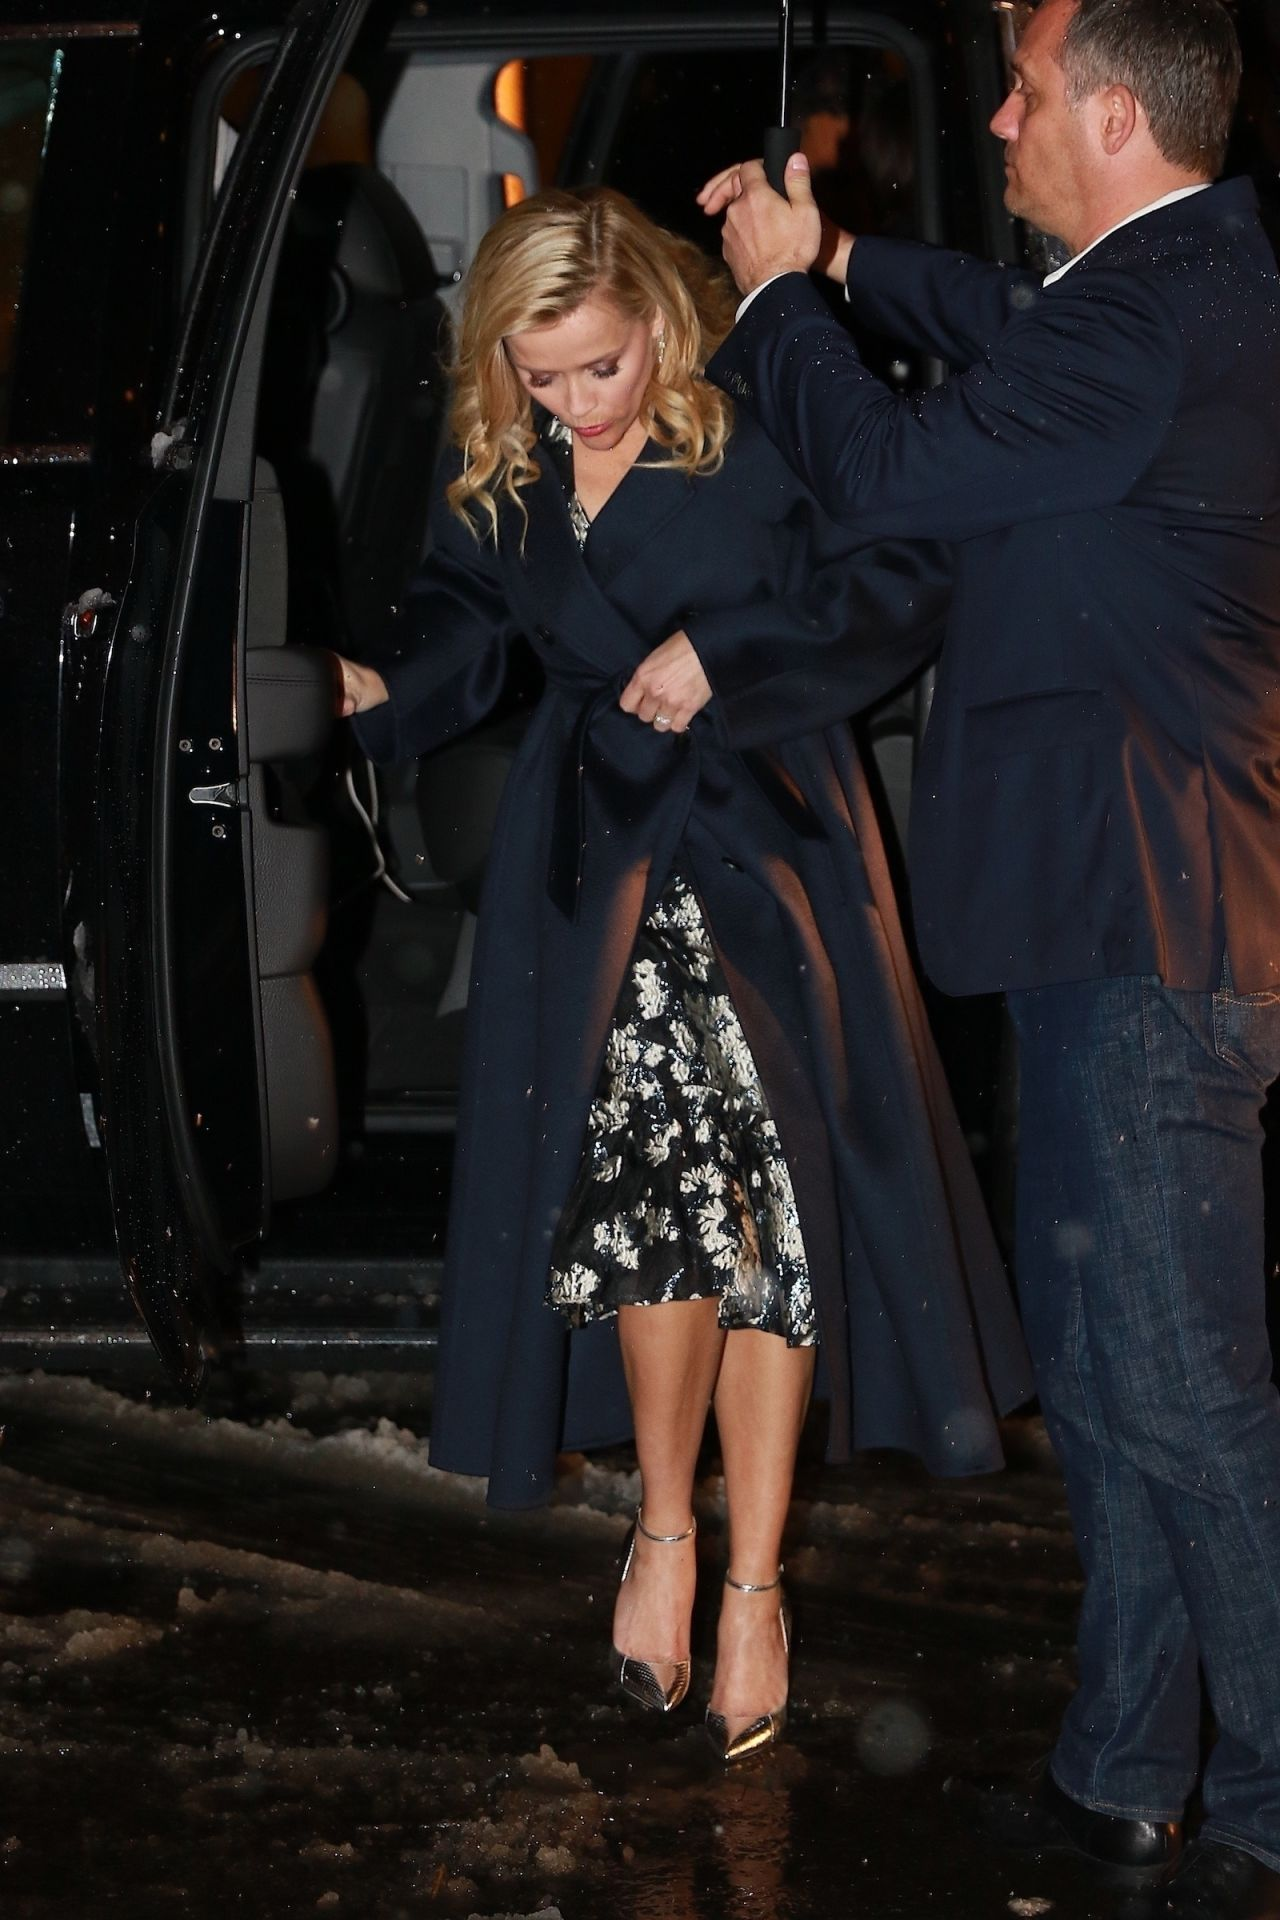 Reese Witherspoon Quot A Wrinkle In Time Quot Premiere In New York